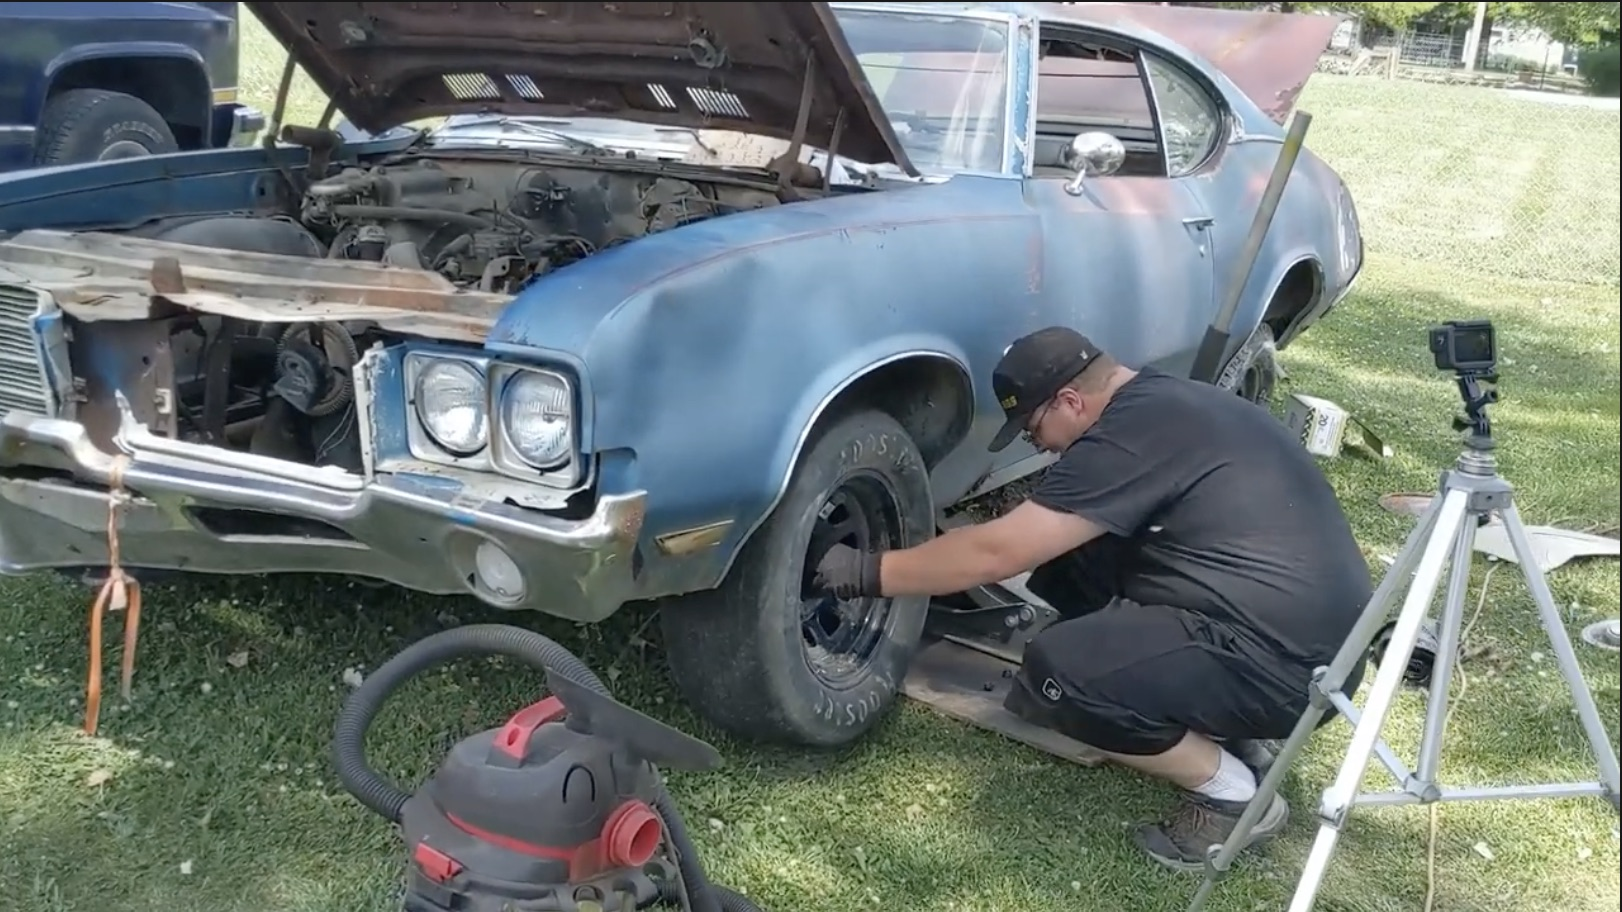 The Rodentia Hotel: Saving A 1971 Oldsmobile Cutlass, But At What Cost?